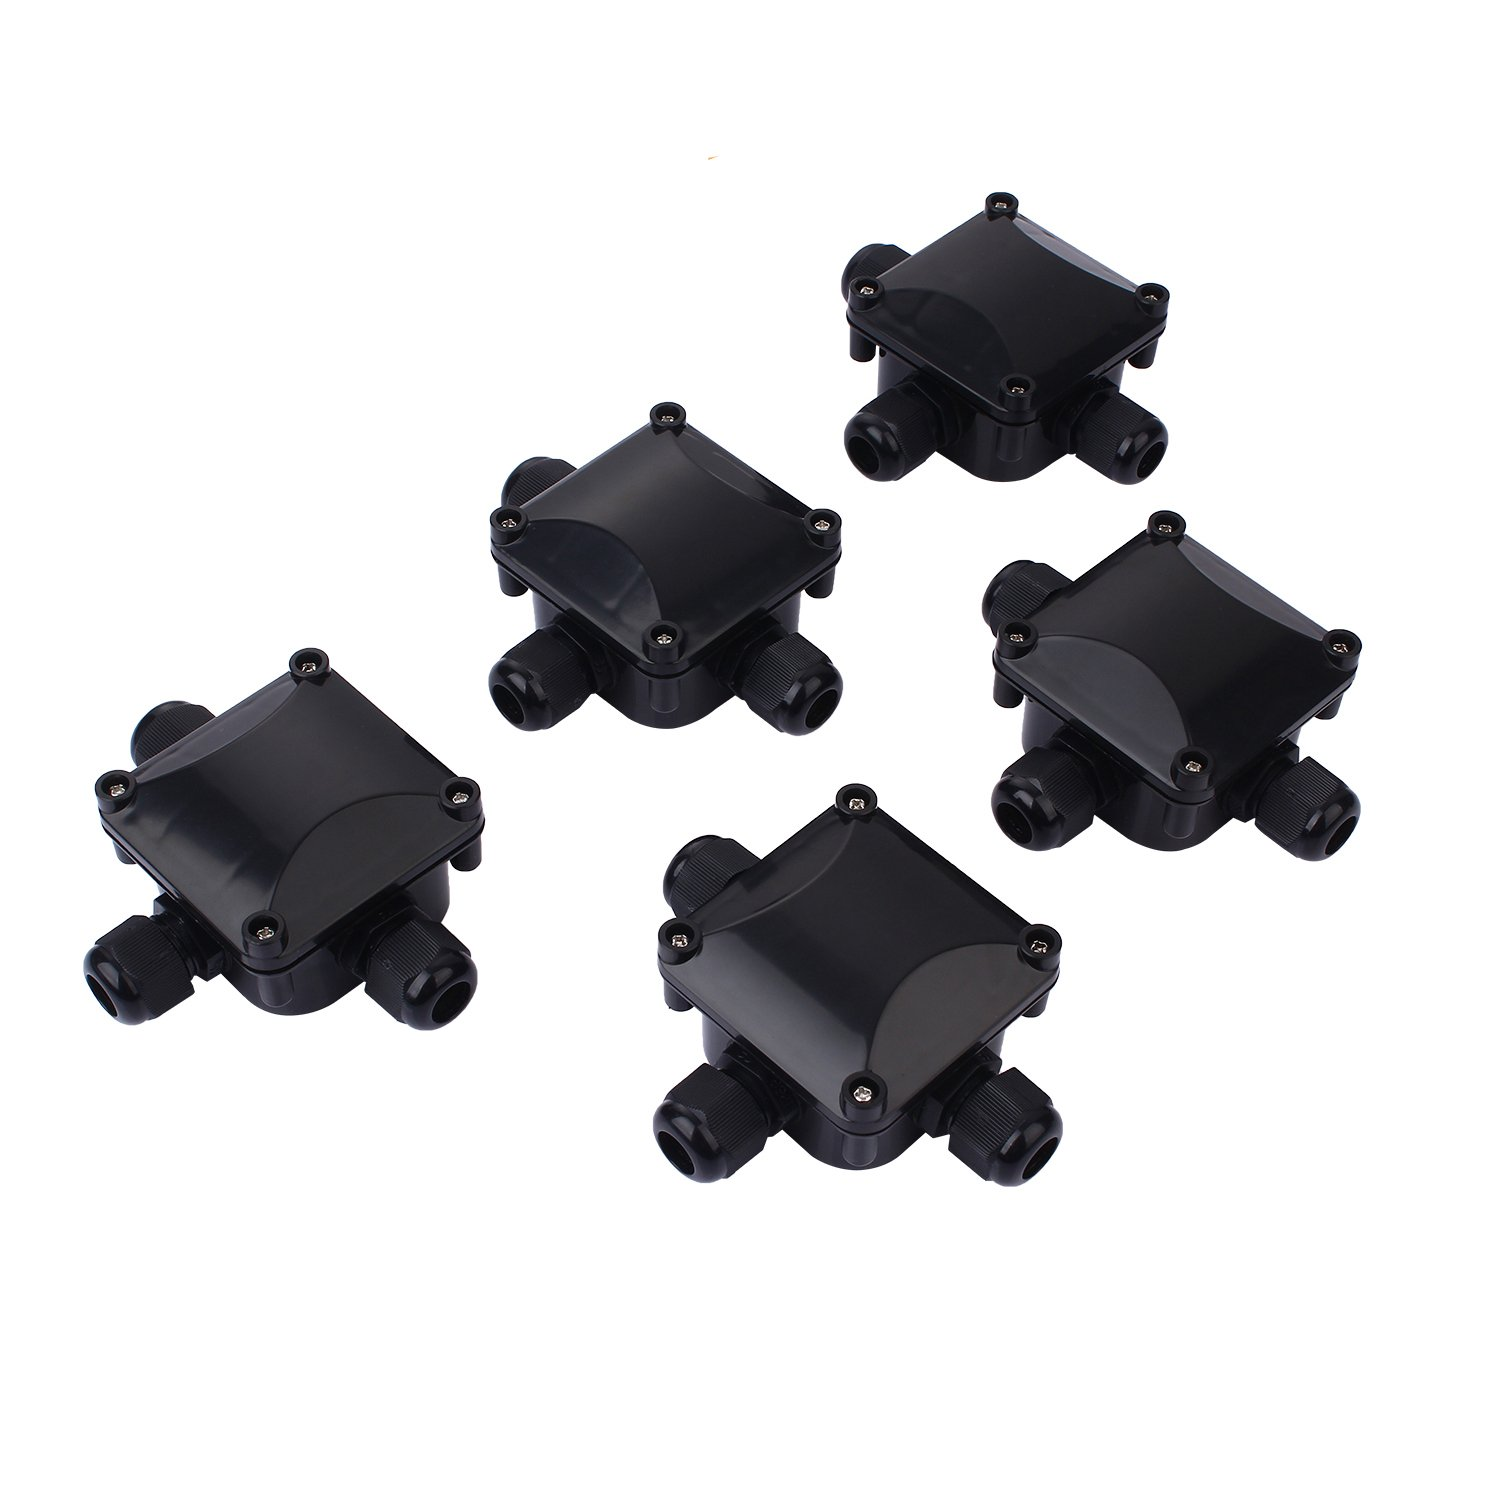 VABNEER 5 Pack Junction Box IP67 Waterproof 3 Way Cable Connectors Plastic Wire Connector Junction Box Ø6.5mm-10.5mm (Black)